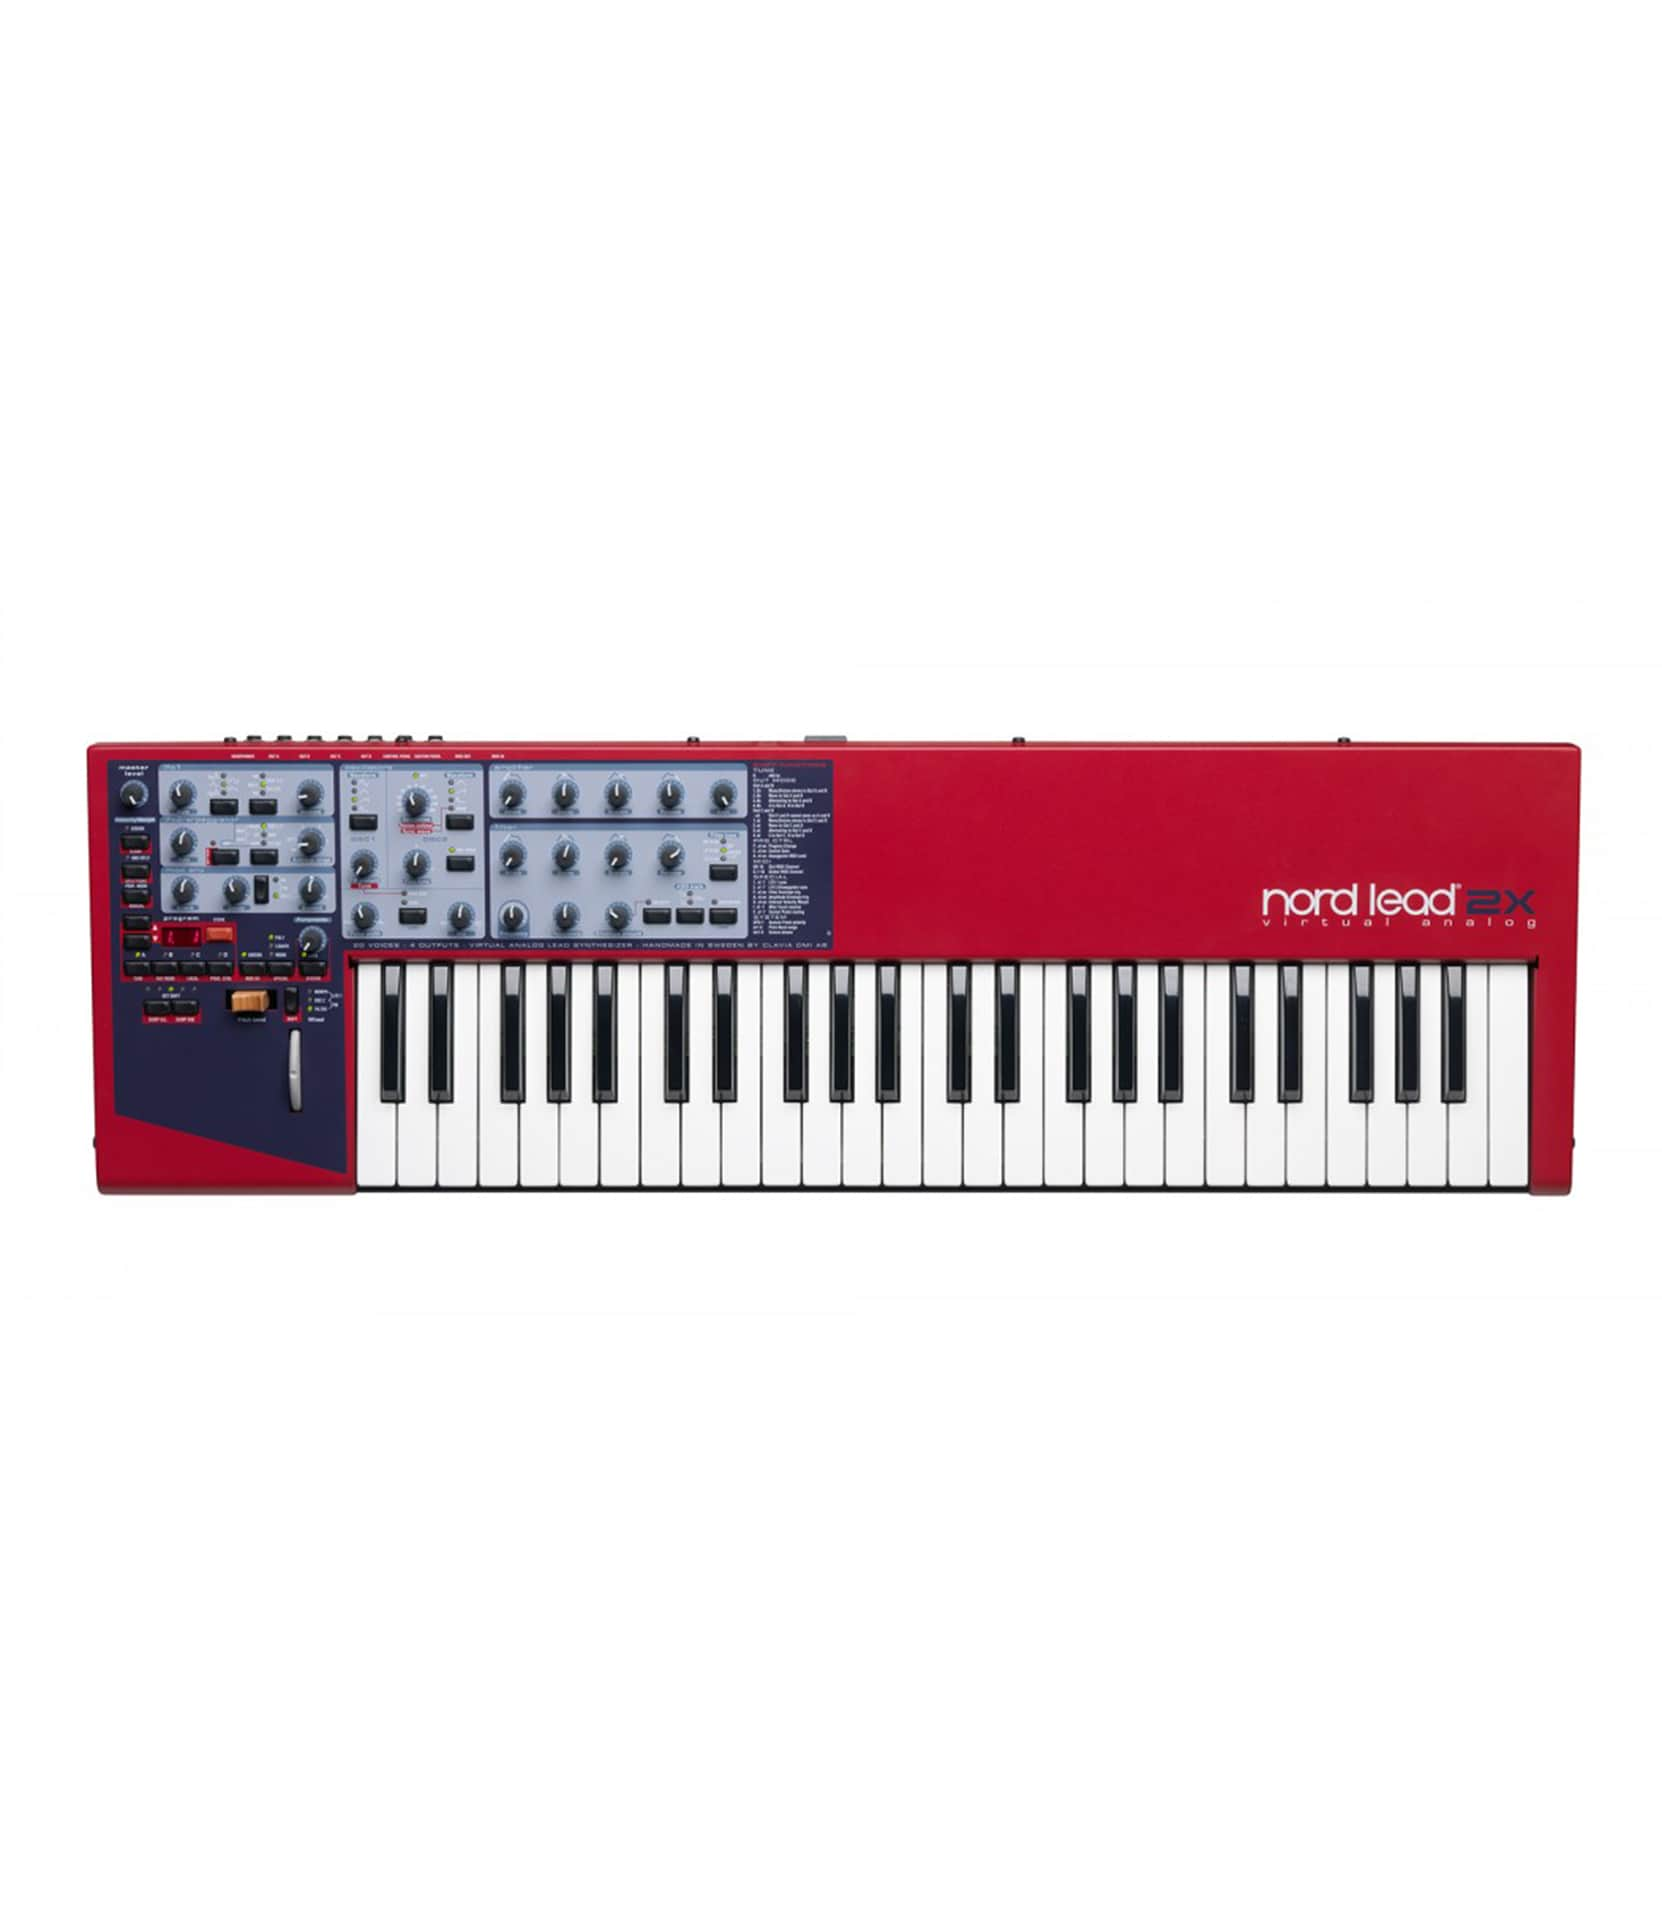 Buy nord Lead 2X Virtual Analog Synthesizer Melody House